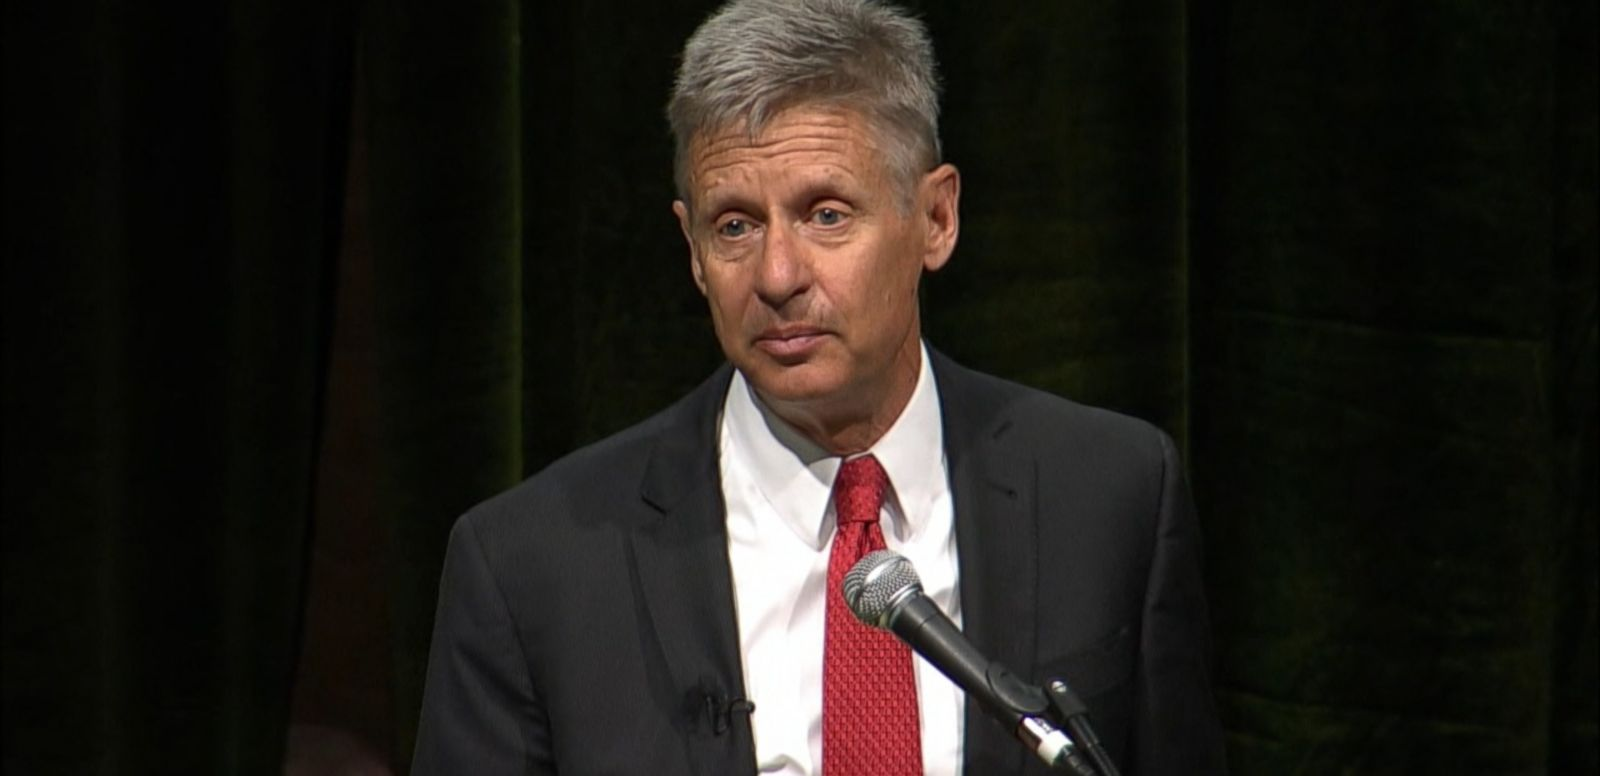 VIDEO: Former New Mexico Gov. Gary Johnson has won the Libertarian nomination for president.